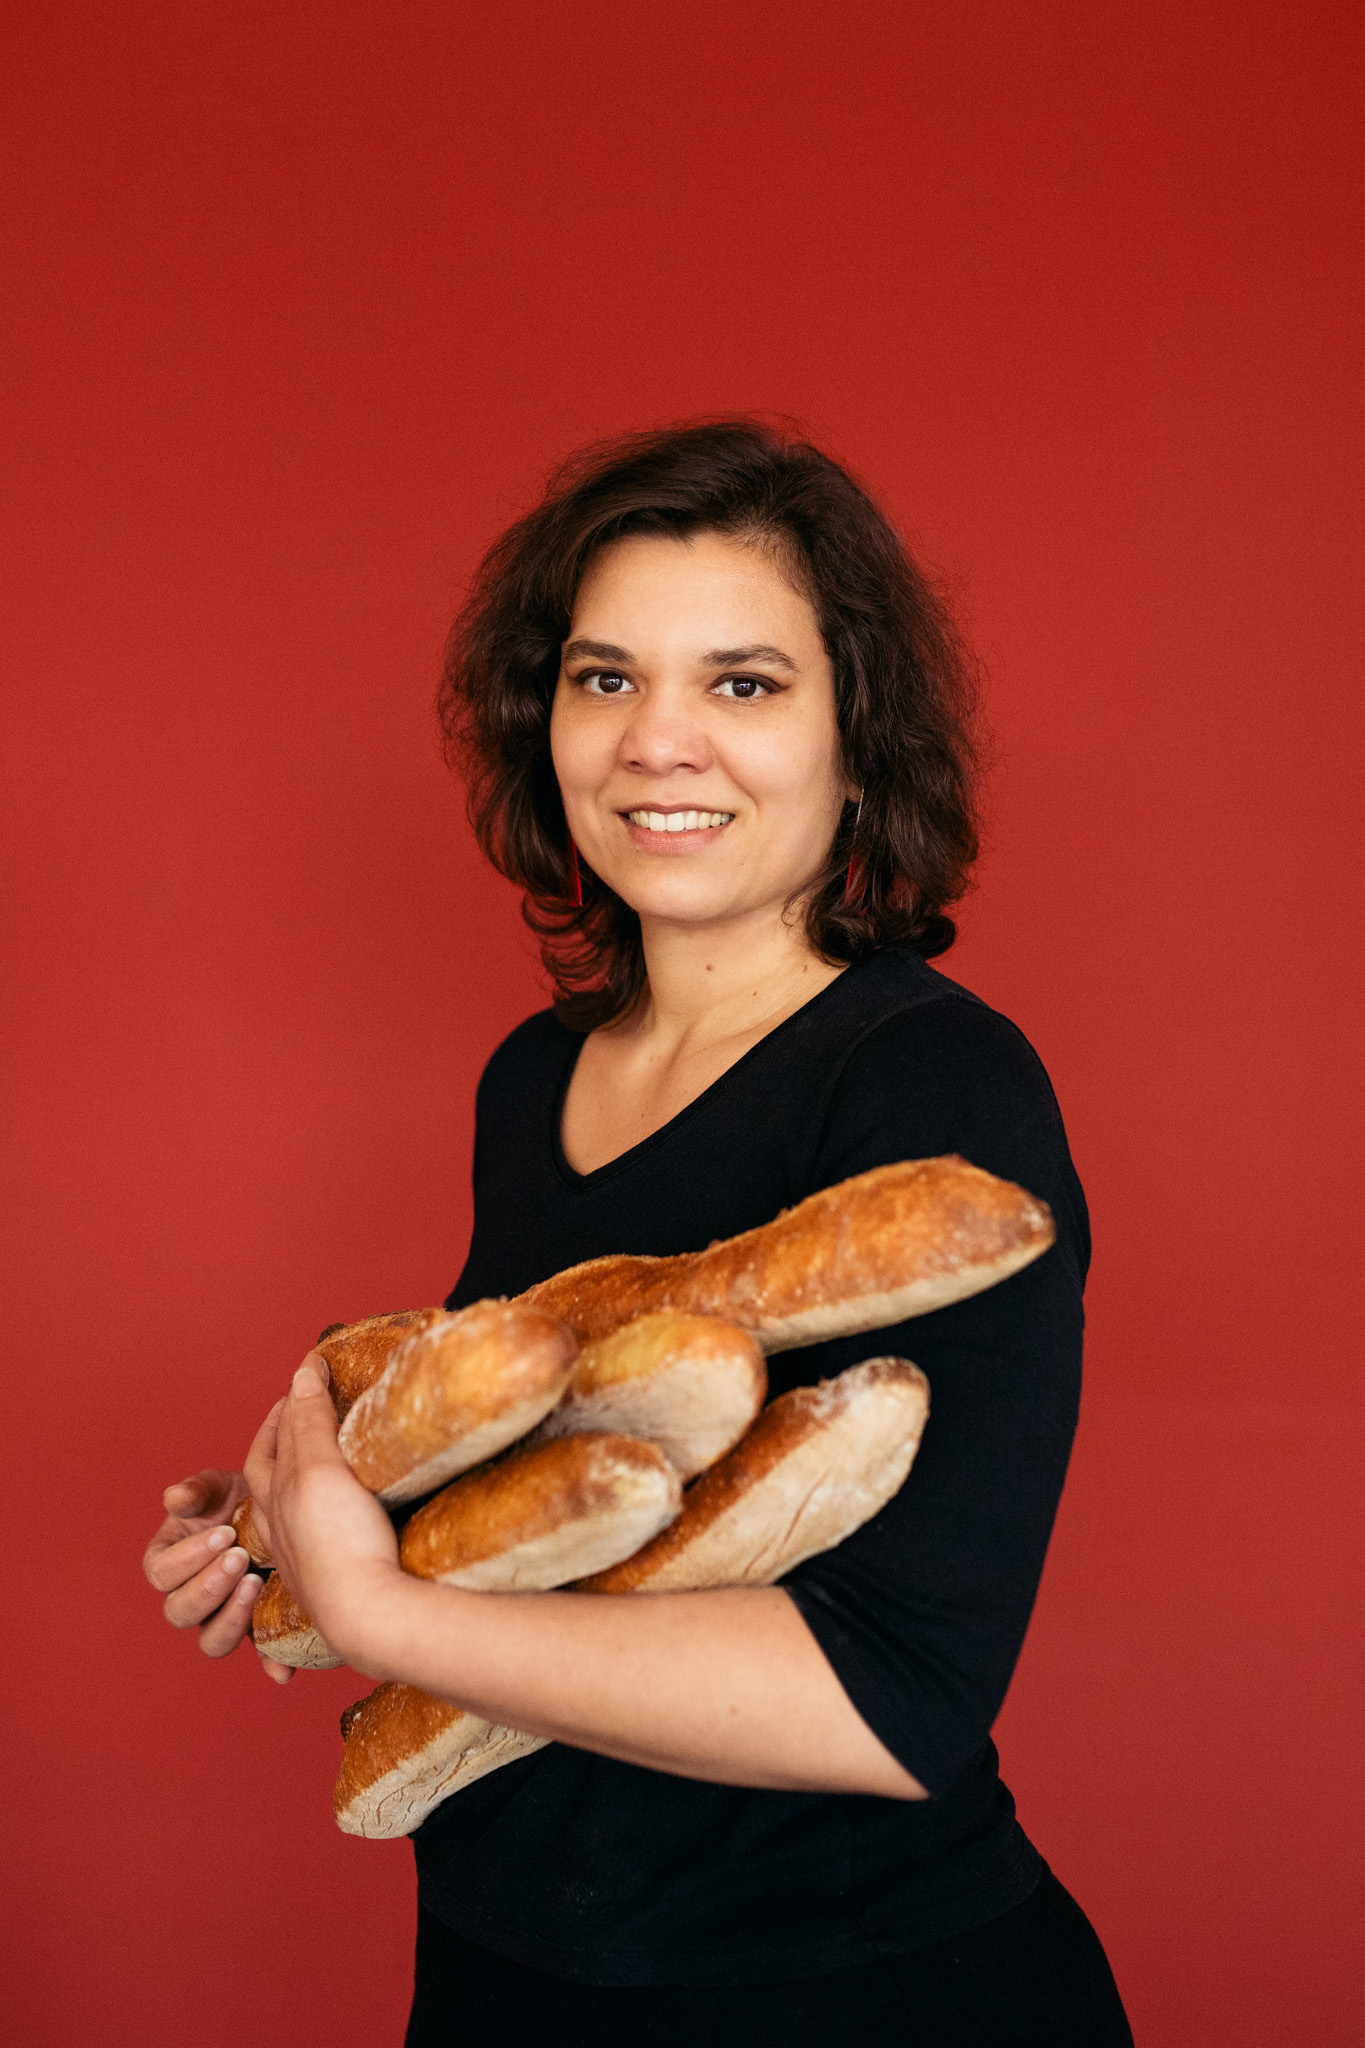 Géraldine and her bread!